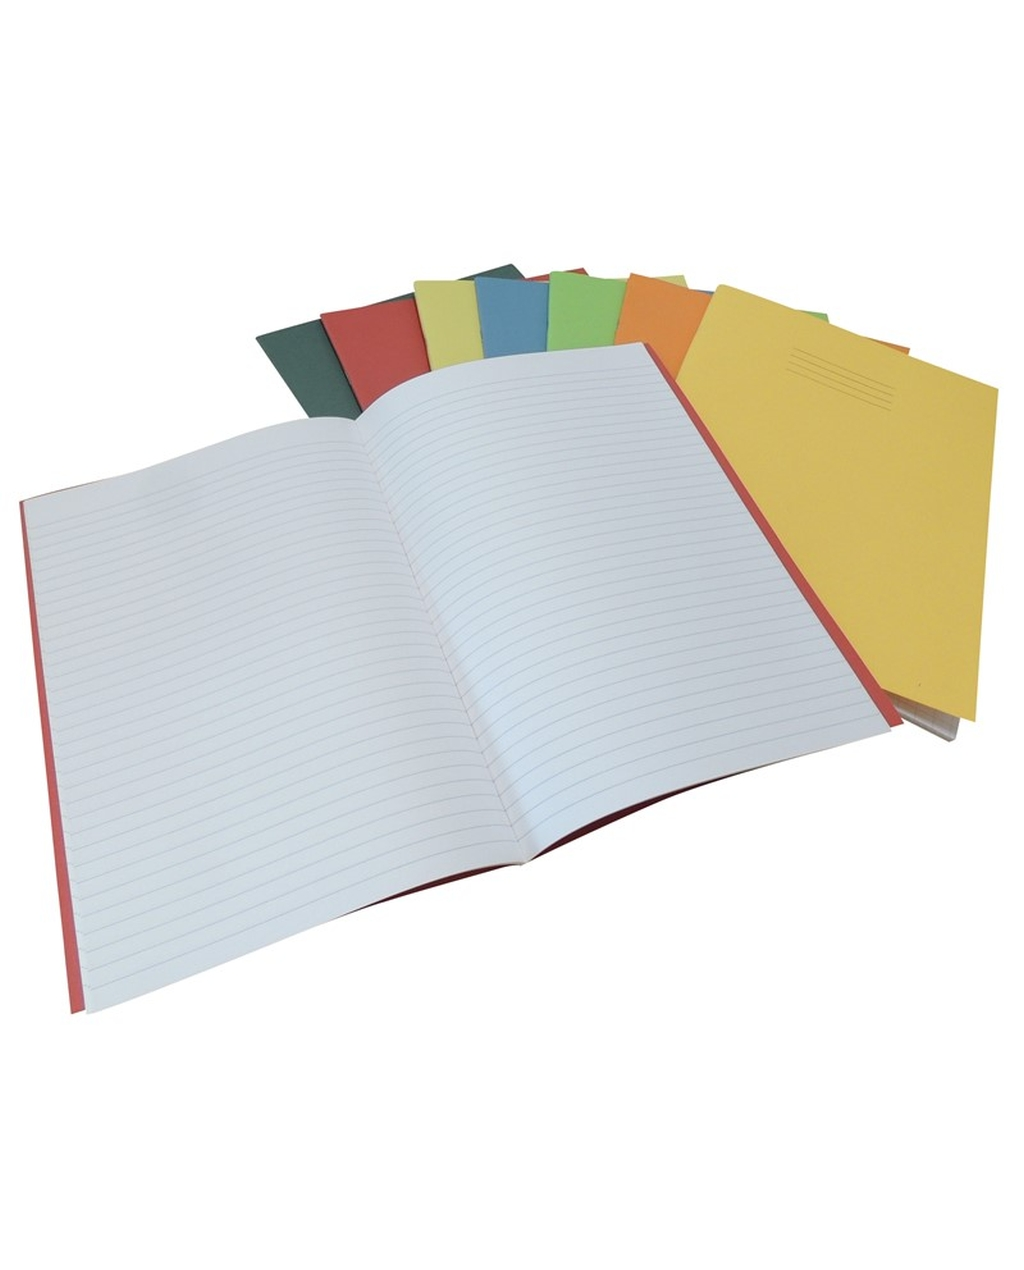 9 x 7 inch 64-Page Red 225gsm Manilla Cover Exercise Books, 8mm Ruled & Margin